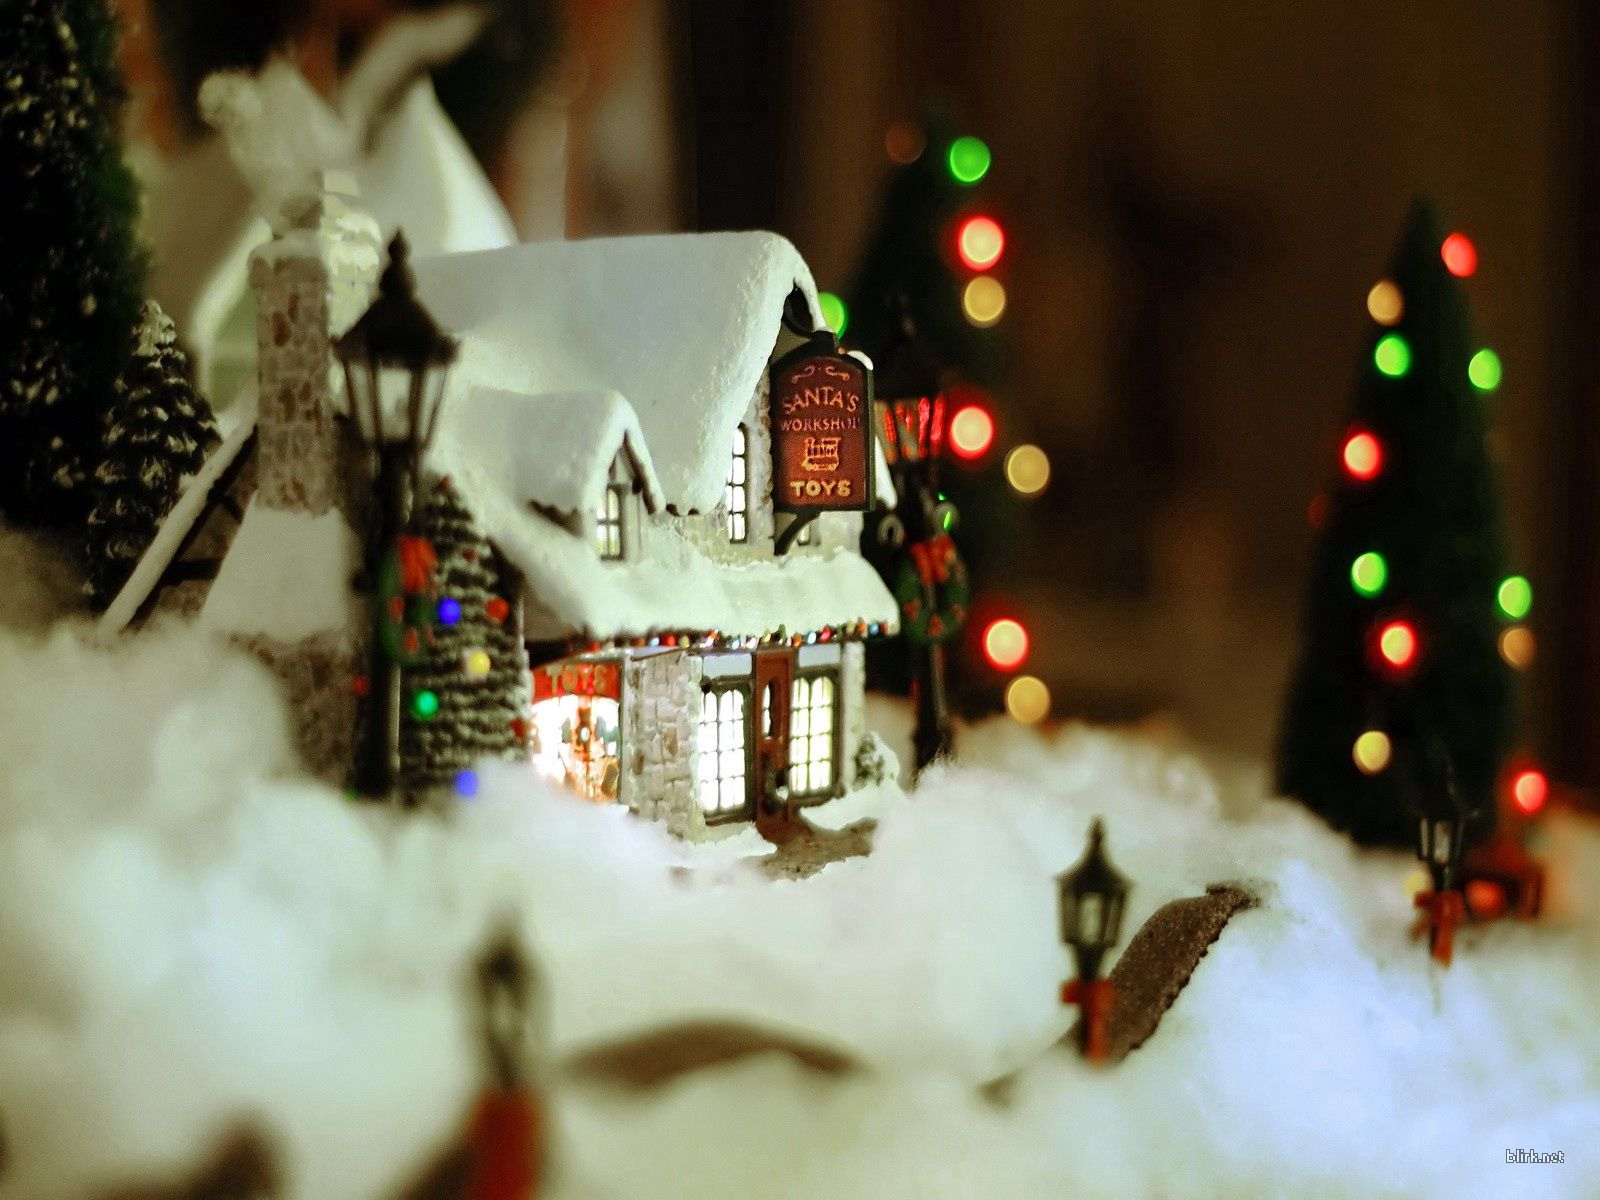 116574 download wallpaper Holidays, New Year, Snow, Christmas, House, Decoration, Coziness, Comfort screensavers and pictures for free